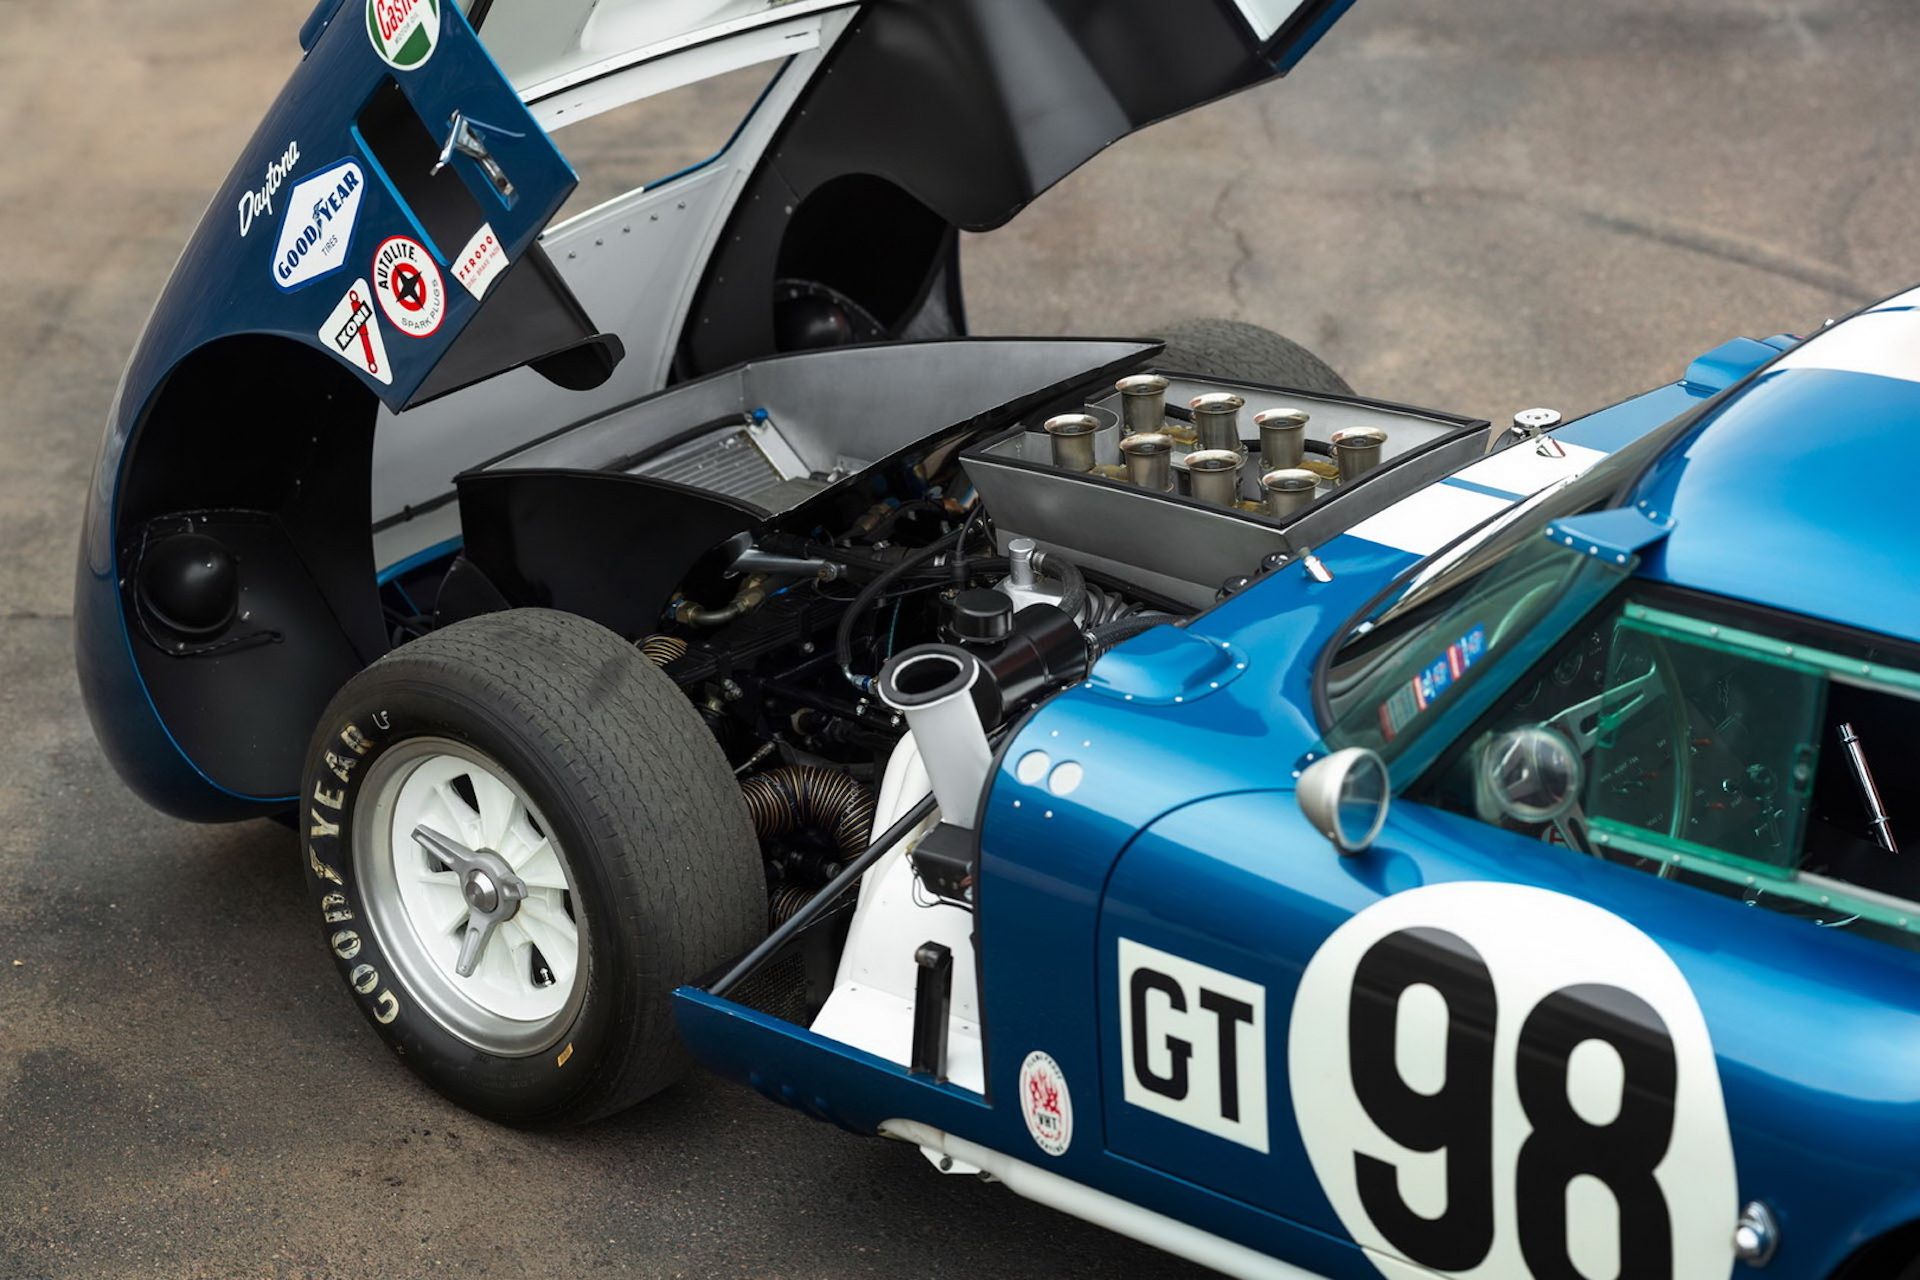 Daytona-Cobra-Carroll-Shelby-auction-AC-Cobra-15